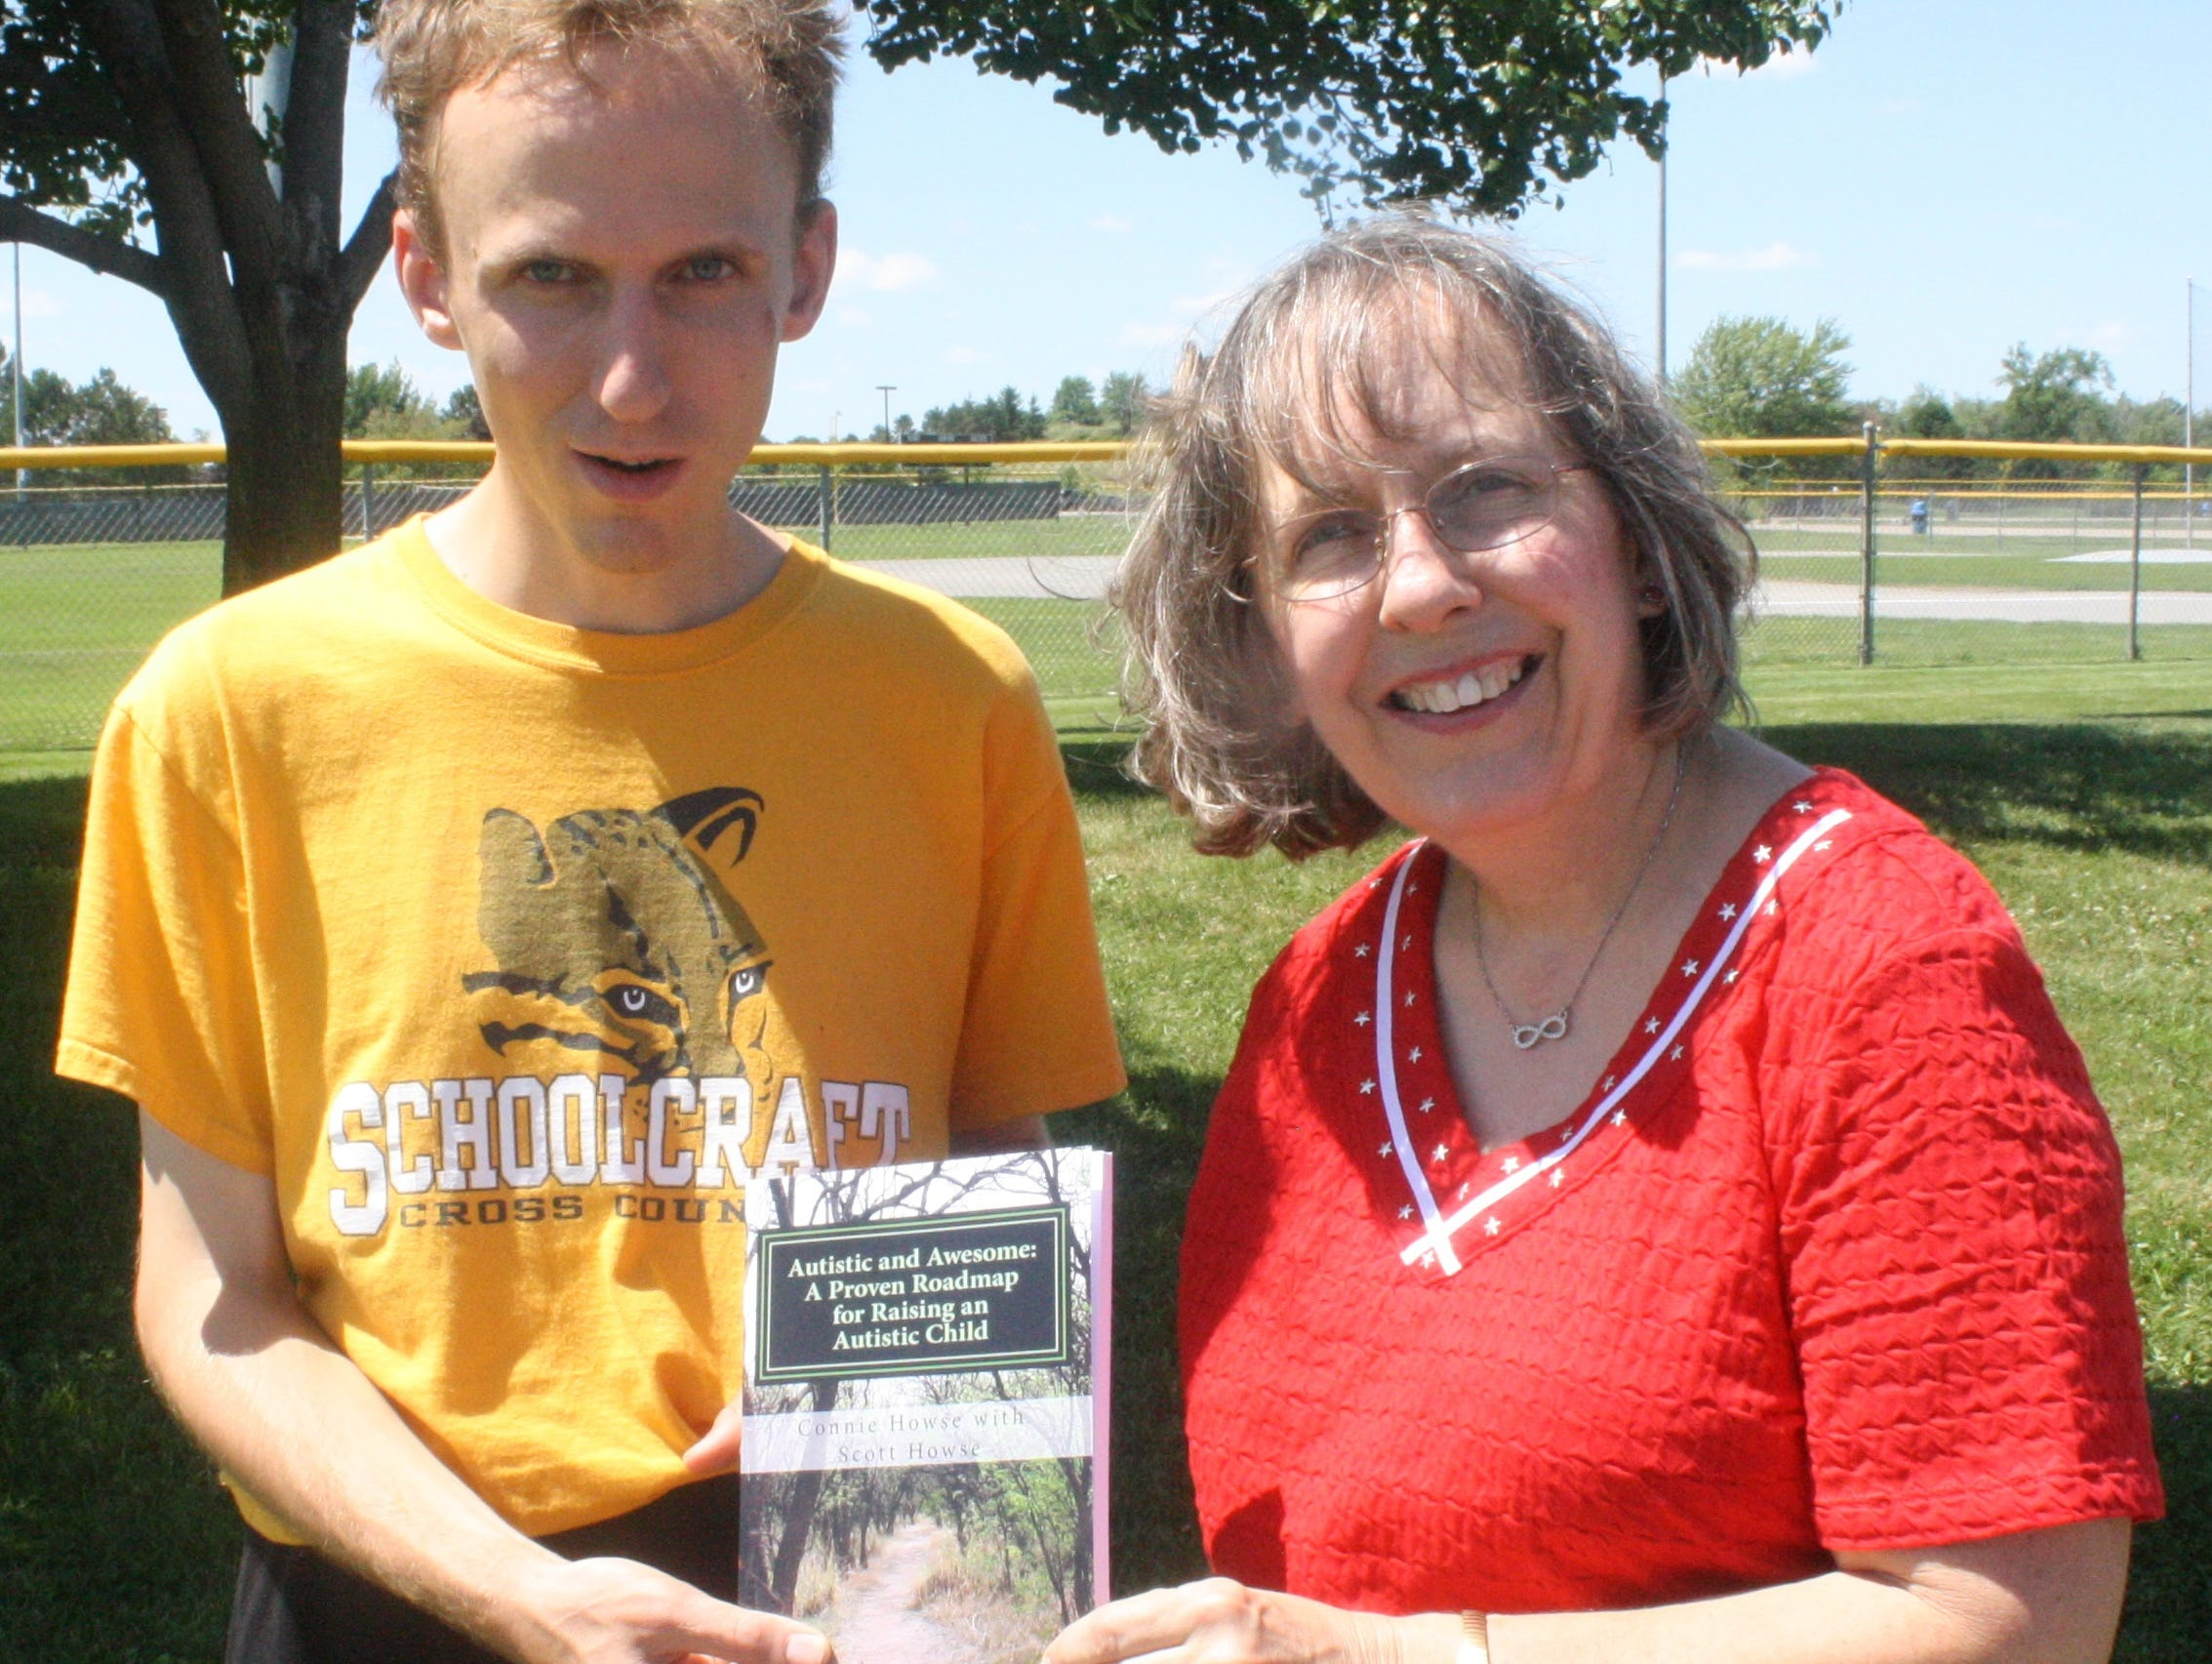 Scott and Connie Howse recently co-authored a book that offers advice on living with autism.